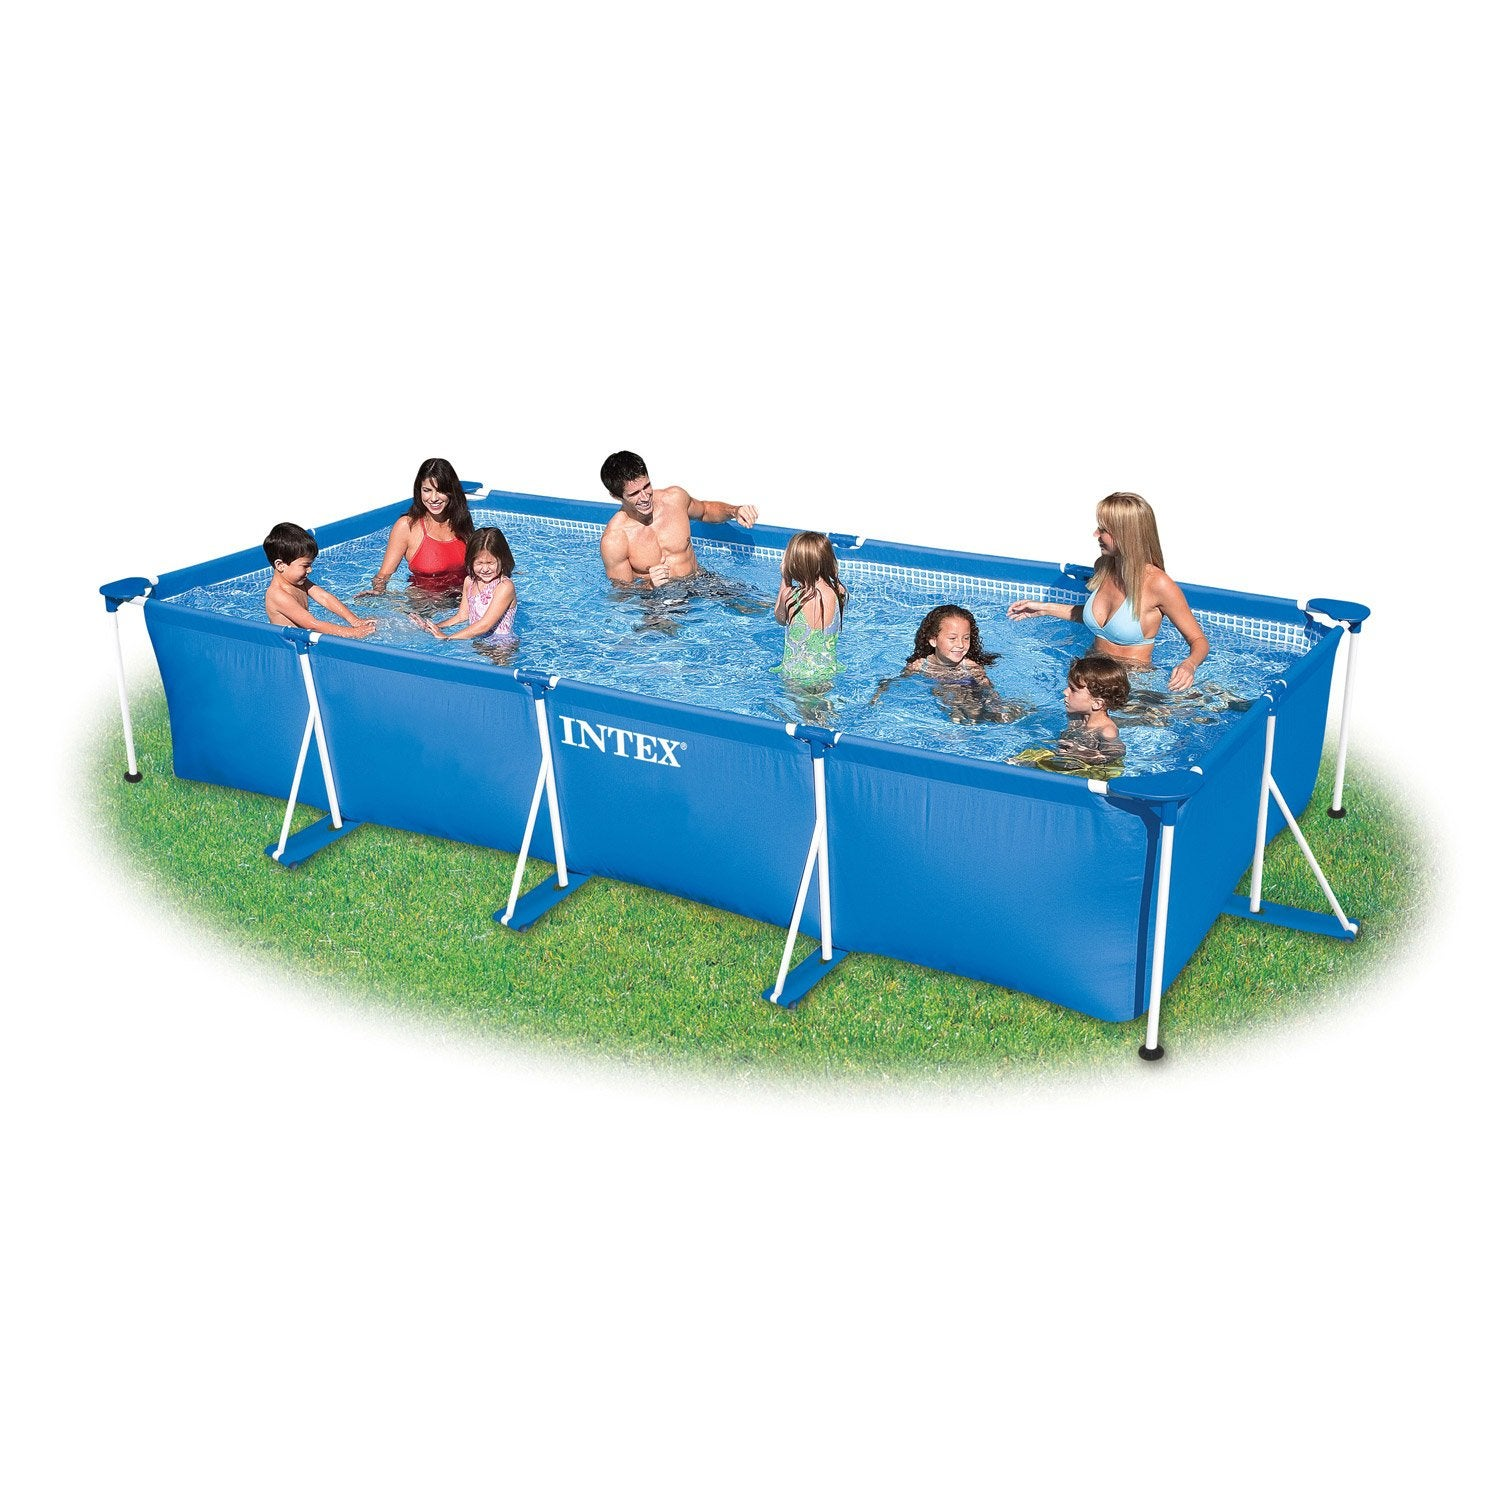 Piscine hors sol autoportante tubulaire intex l x l for Piscine hors sol 3x3